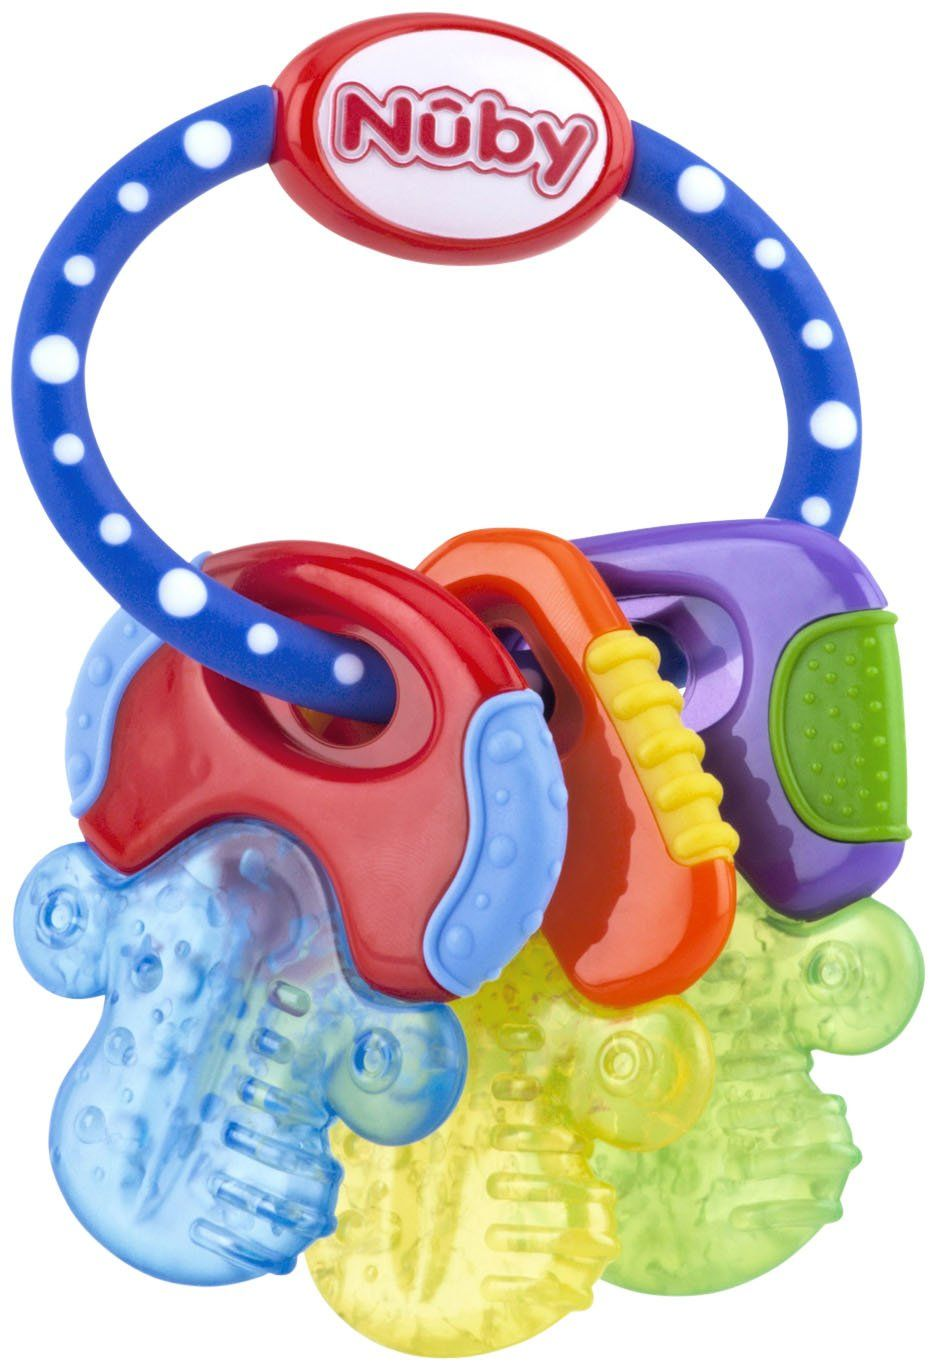 Nuby Ice Gel Teether Keys - Multicolor - 1 - Free Shipping